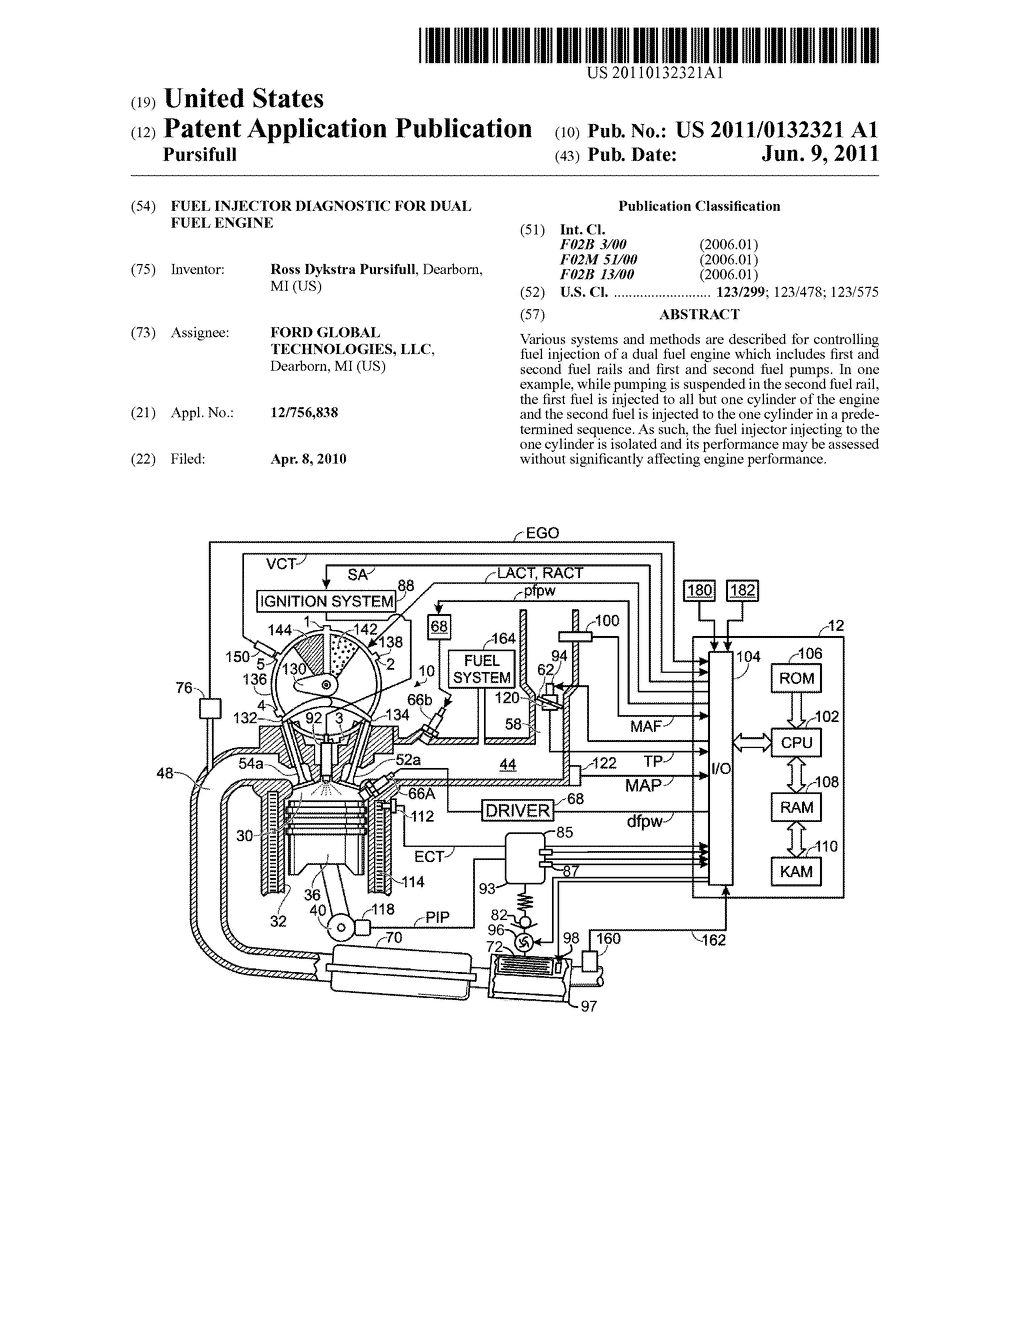 hight resolution of fuel injector diagnostic for dual fuel engine diagram schematic and image 01